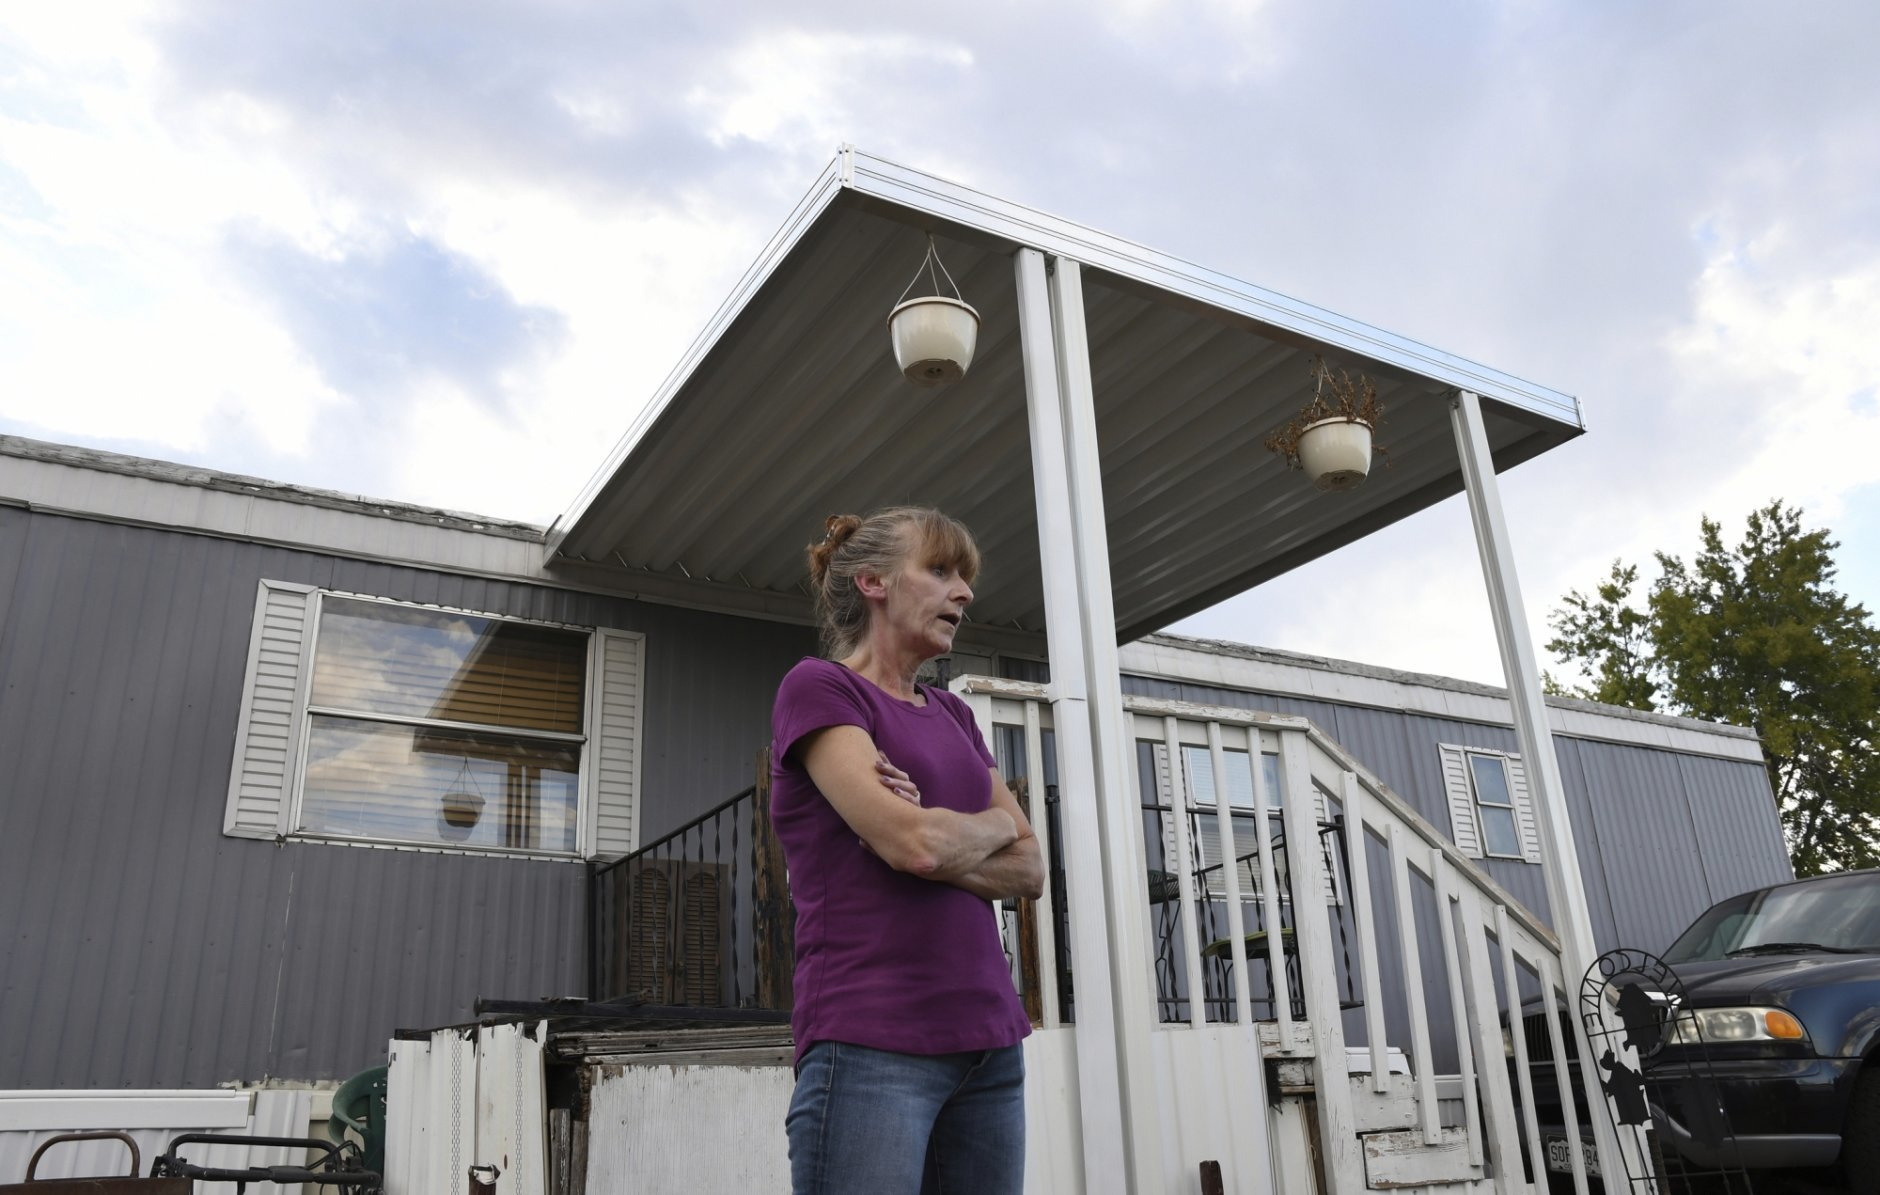 <p>In this Aug. 30th 2019 photo shows Karla Lyons, outside her mobile home at the Lamplighter Village in Federal Heights, Colo. Lyons&#8217; waitressing wages are eaten up by a constant stream of home and yard repairs ordered by her park manager, including removal of a giant maple tree that fell on her patio roof and crushed it. She would move if she could afford it. (Kathryn Scott/The Colorado Sun)</p>